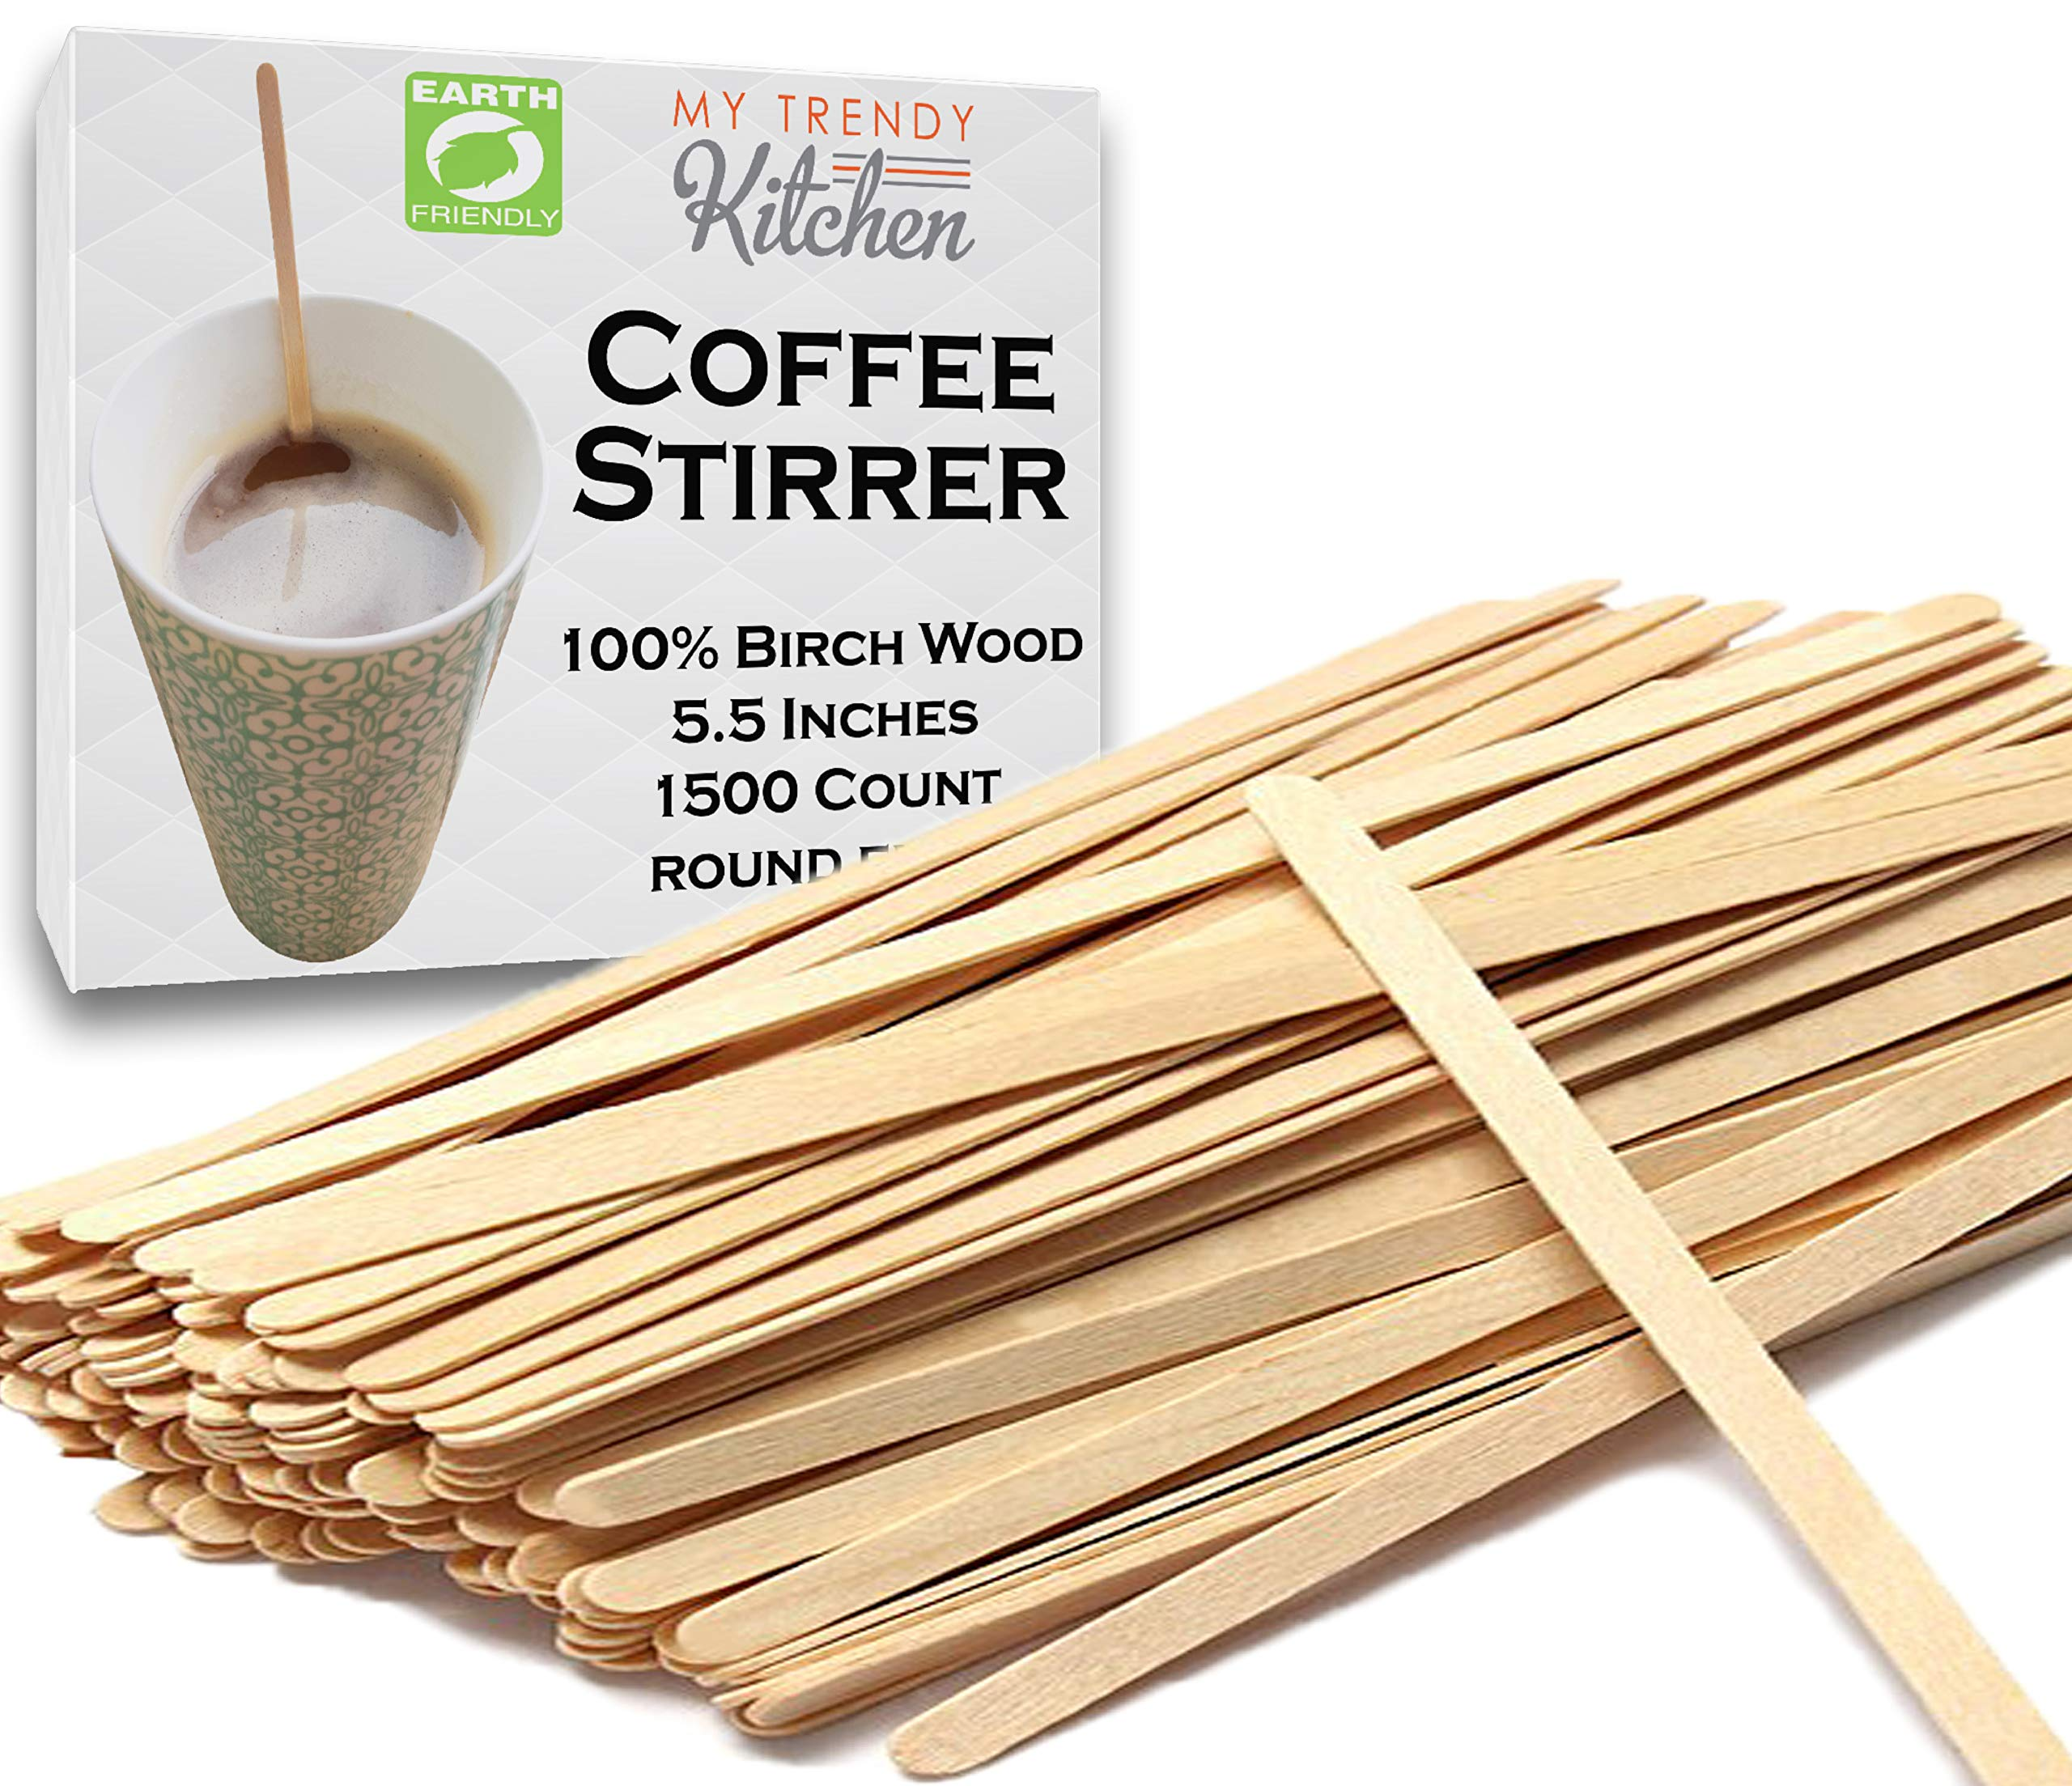 Wooden Coffee Stir Sticks 1500 Count - Eco-Friendly Splinter-Free Birch Wood - Disposable Coffee, Tea, Beverage Mixing Stirrers with Round Ends by My Trendy Kitchen (Image #1)